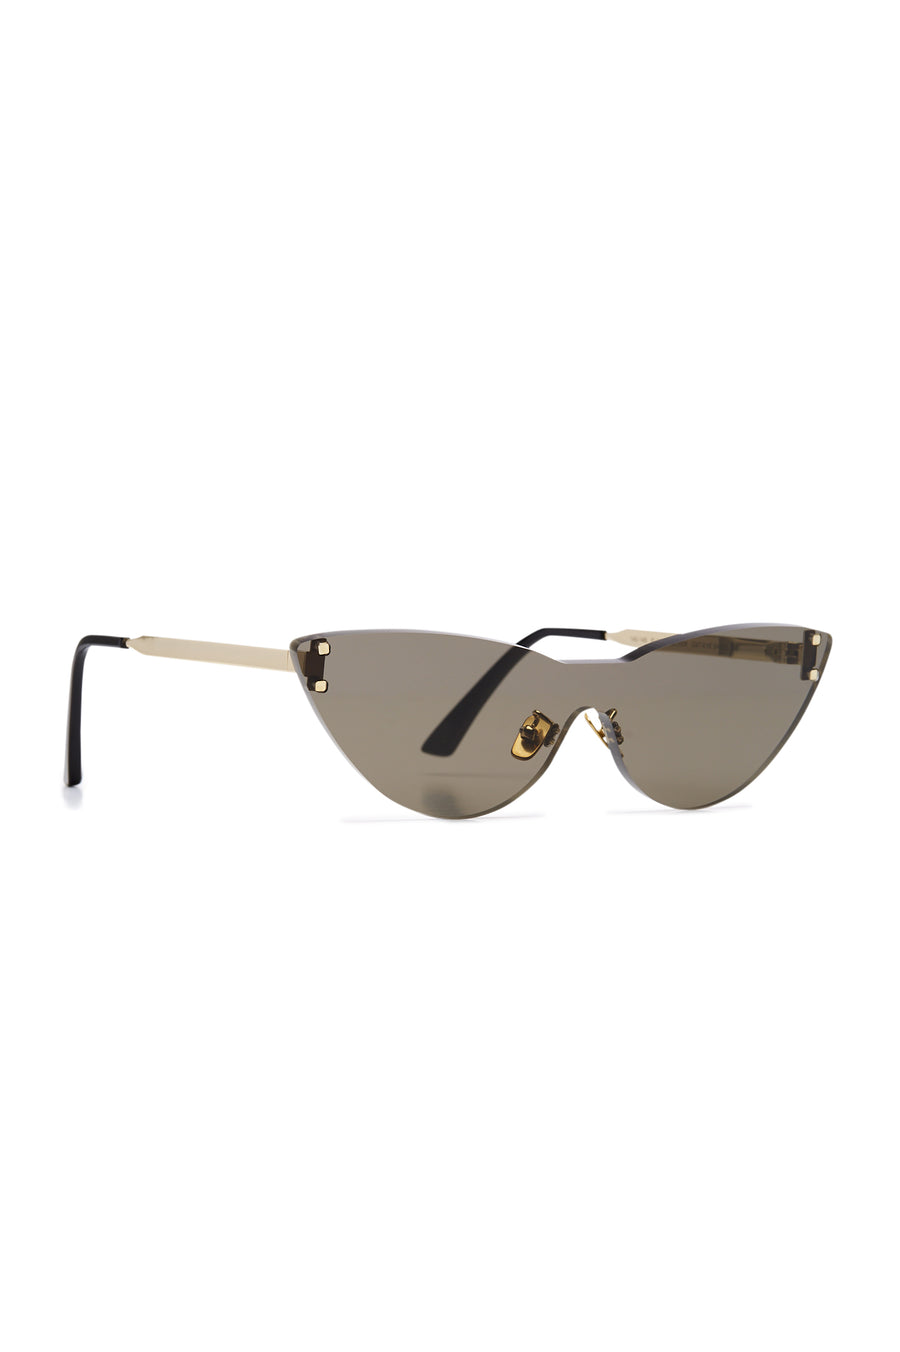 S T Cat Eye Shield Sunglasses Grey, made with Japanese acetate